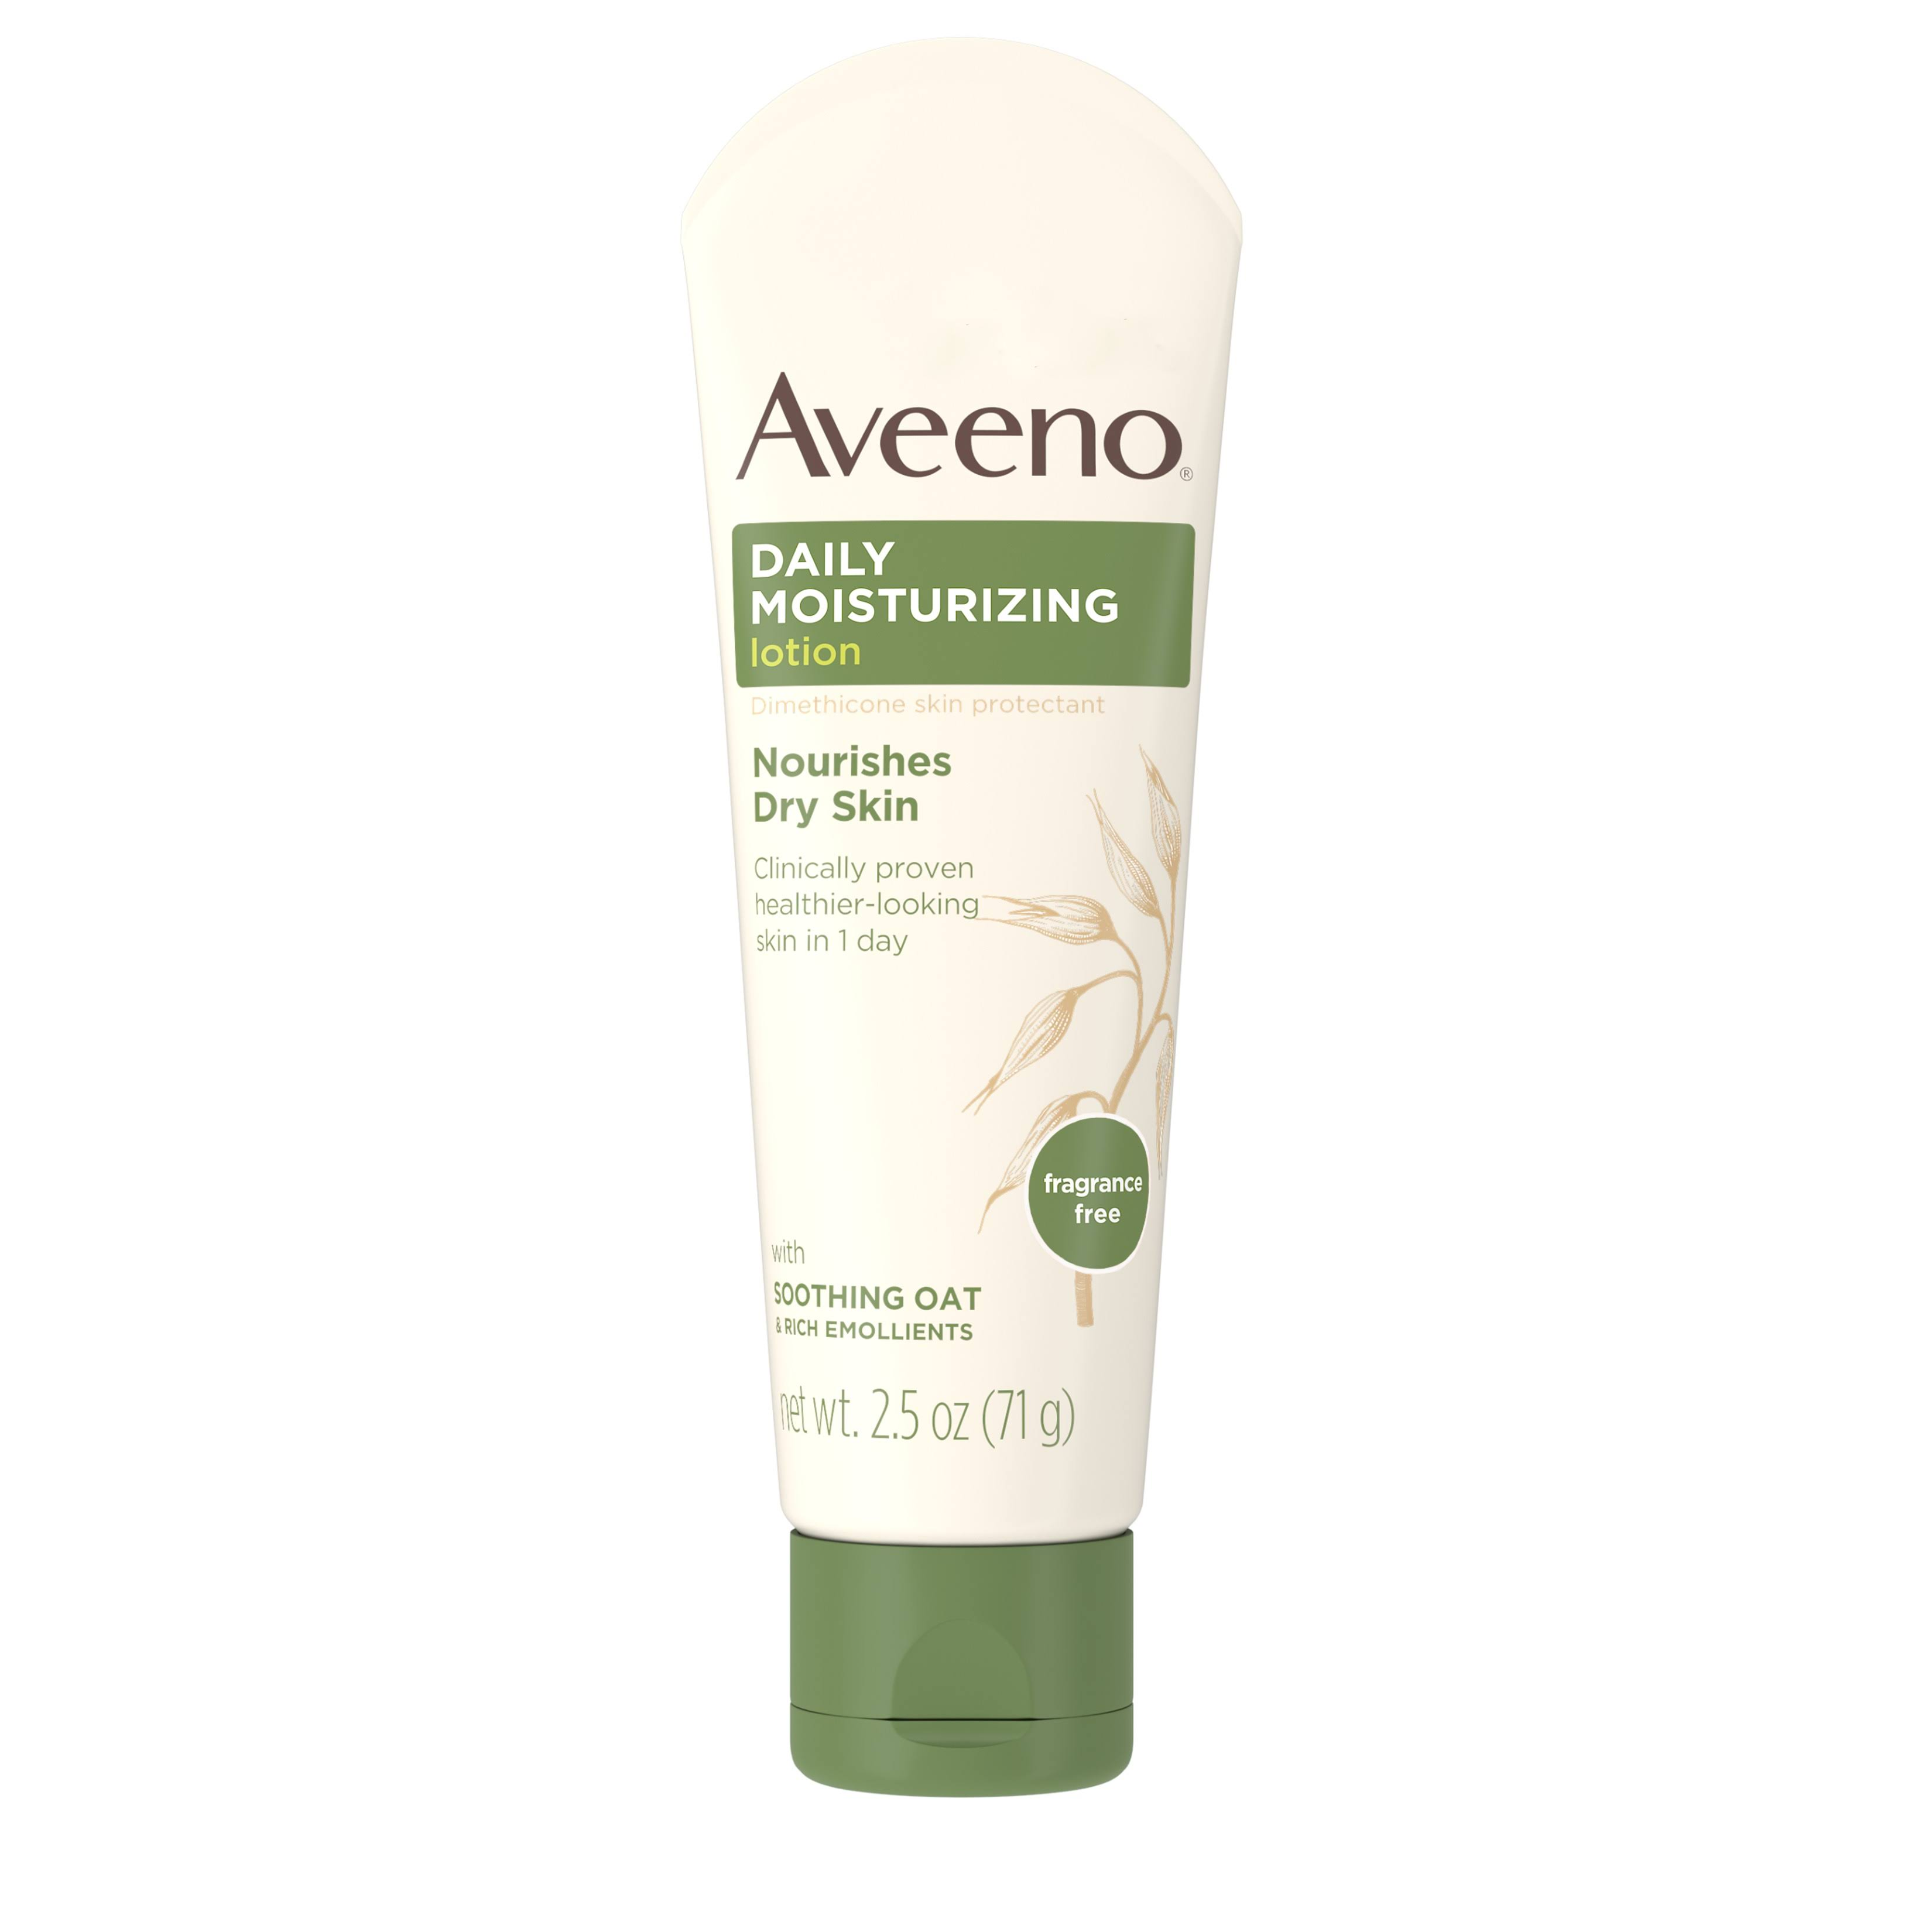 Aveeno Daily Moisturizing Lotion - 2.5oz, 3 Pack